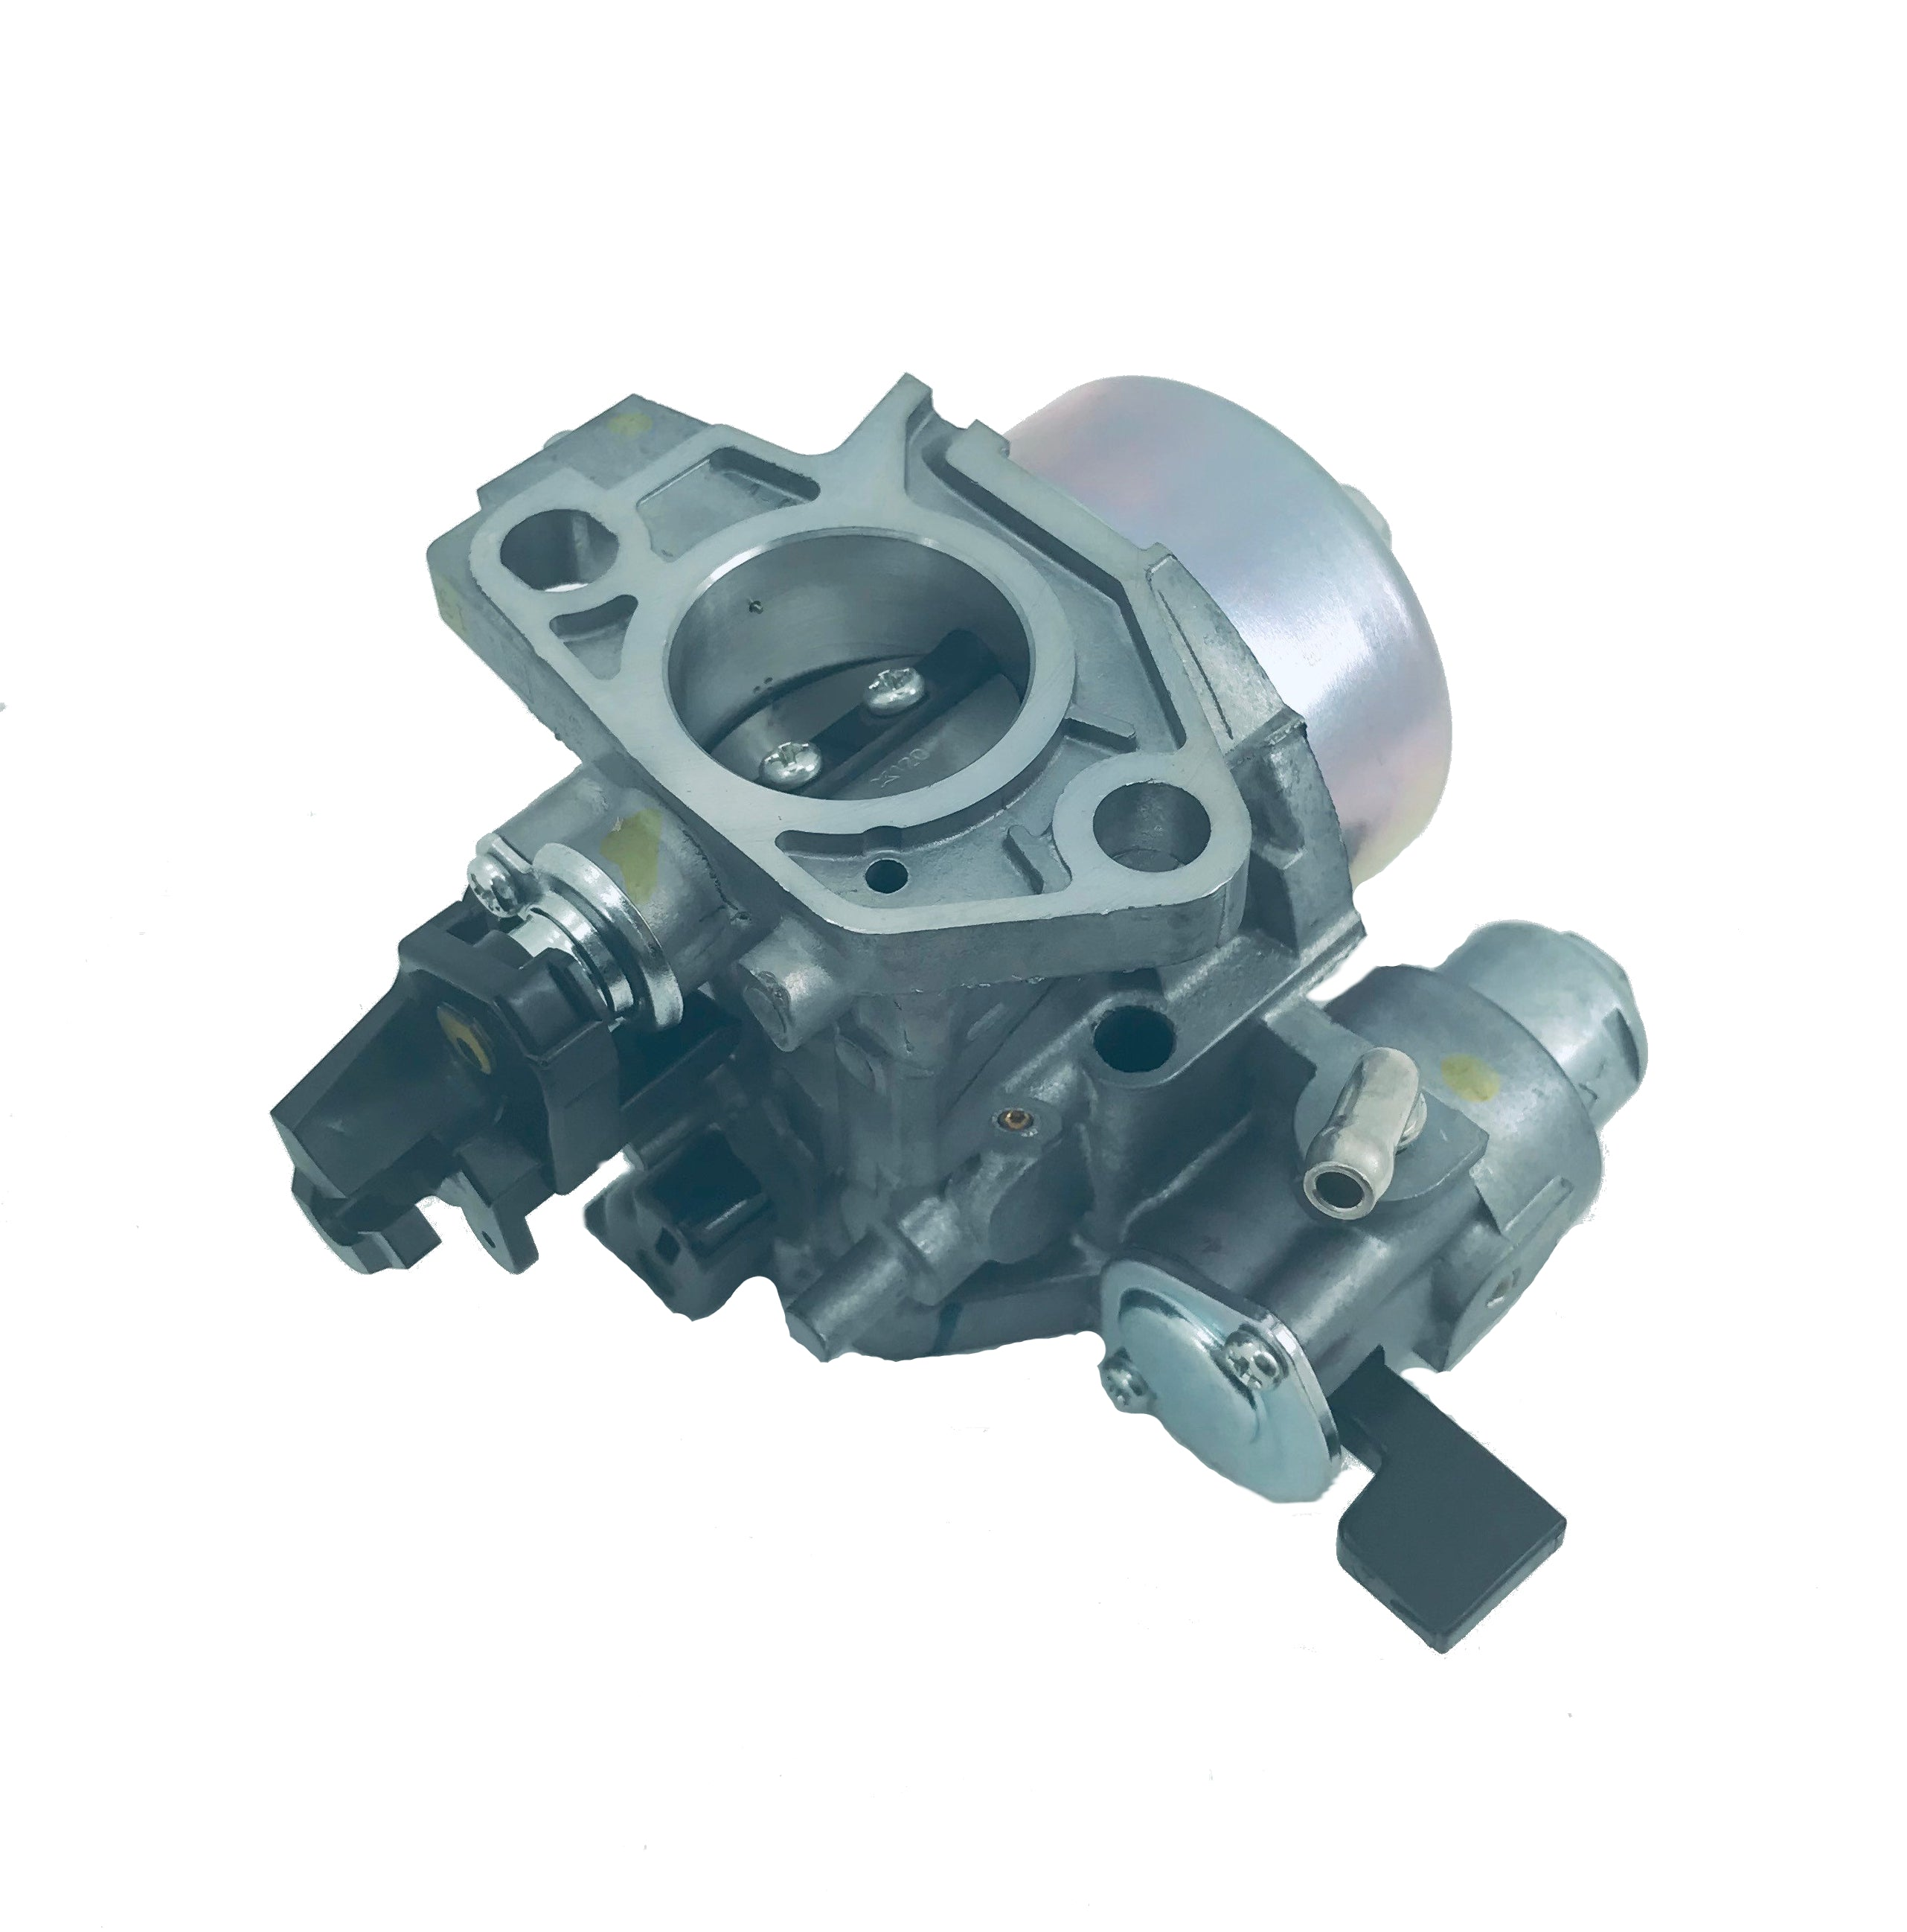 Honda Carburetor (BE88A A) - 16100-Z5T-901,1